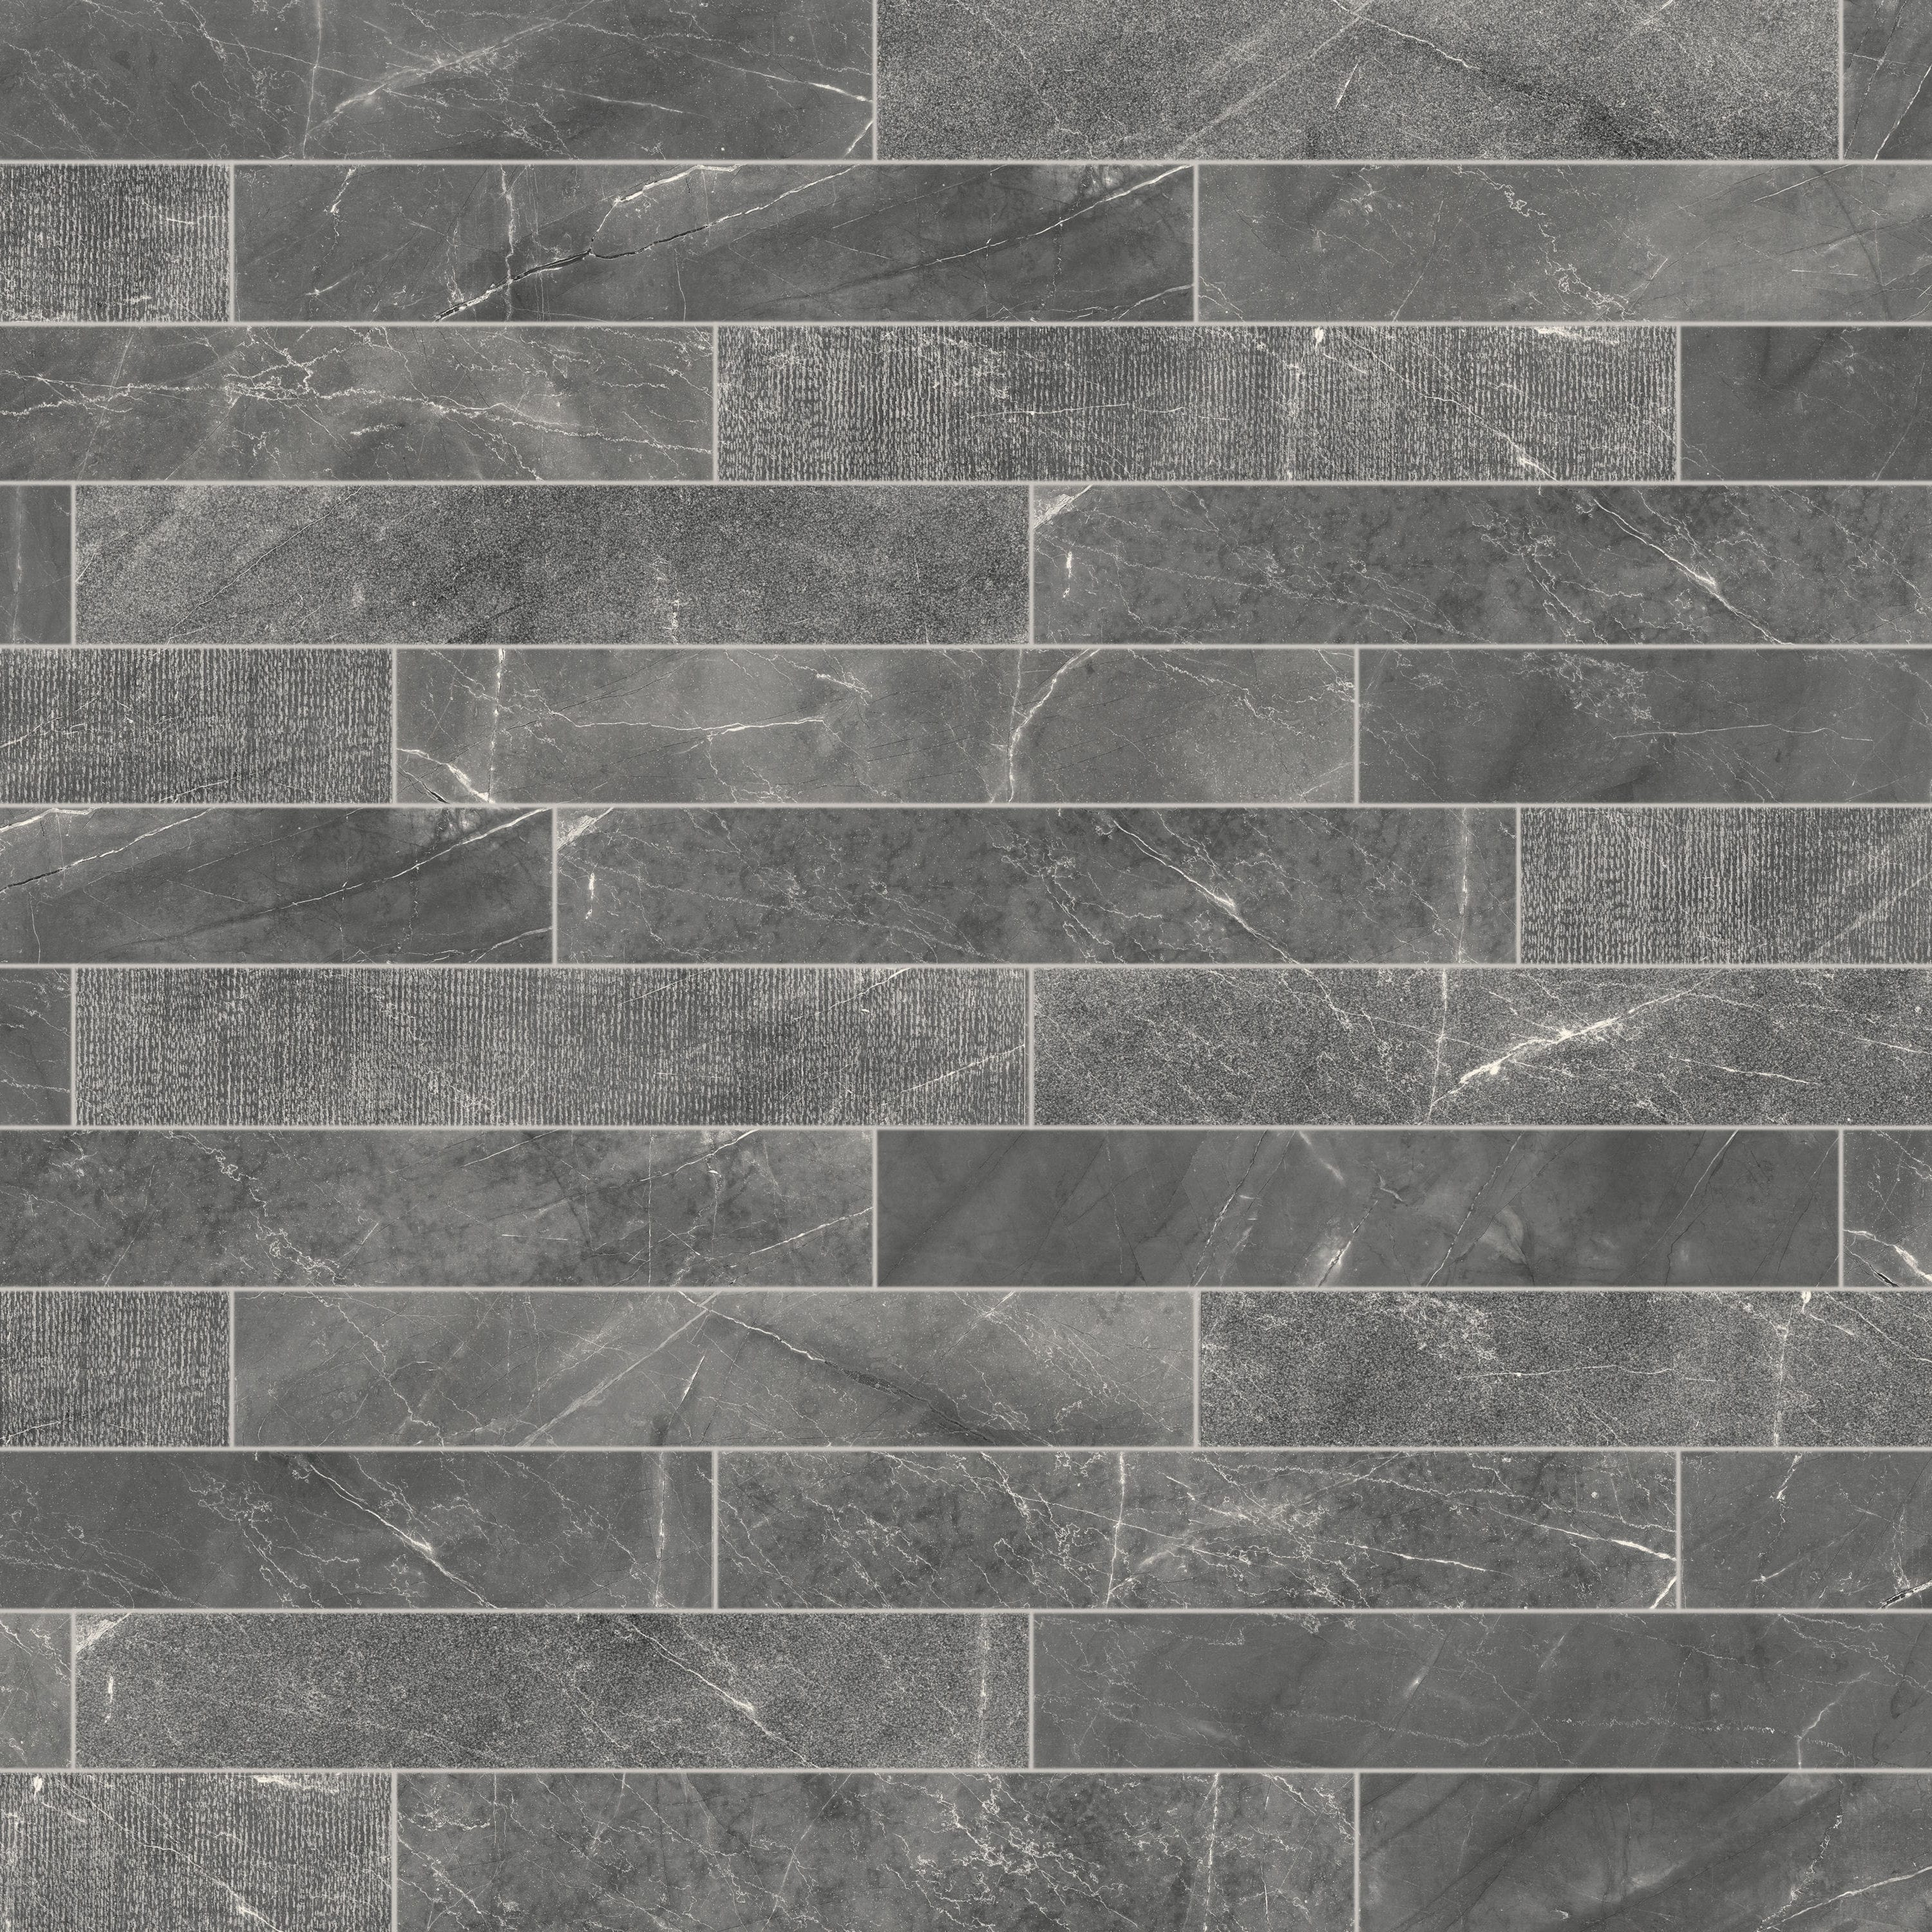 Urban Cement Grey Stone Effect Ceramic Wall Floor Tile: Mimica Fumo Textured Mix Porcelain Tiles